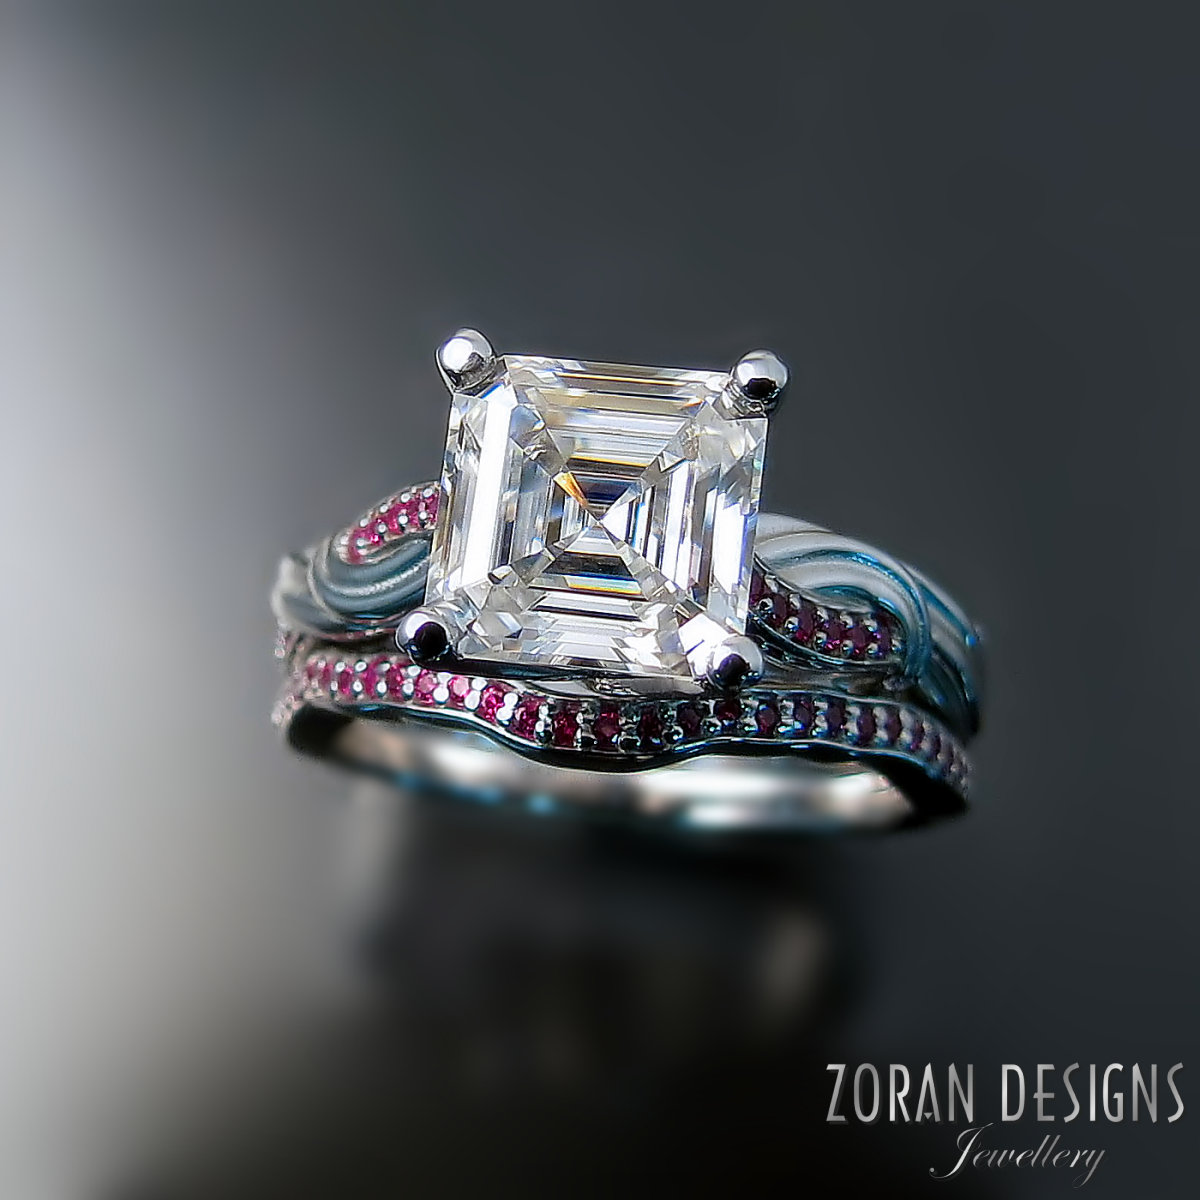 unique-moissanite-engagement-rings-sculptural-design-with-rubies.jpg